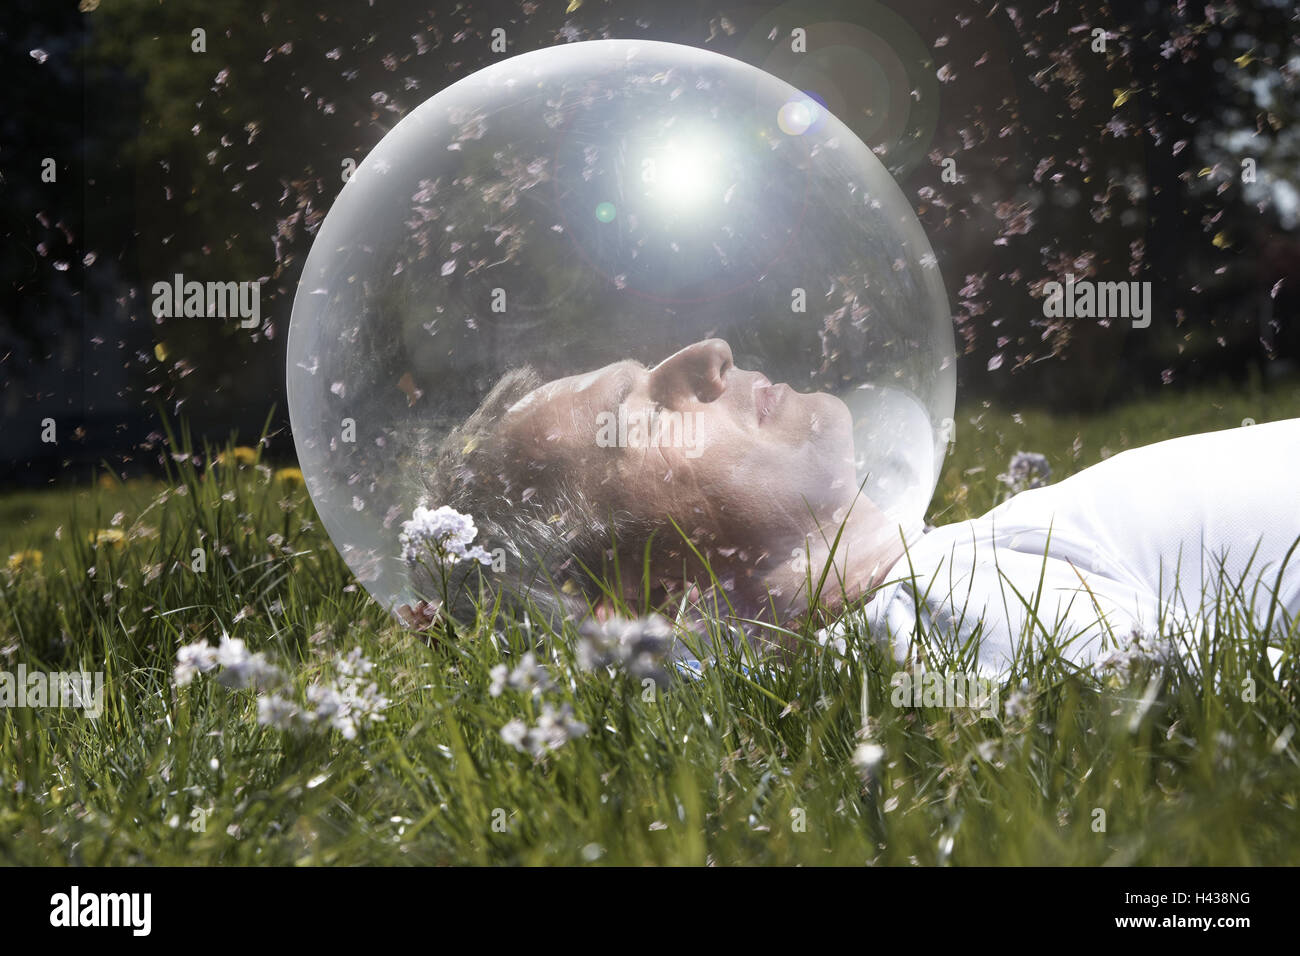 Garden, man, head, glass ball, meadow, lie, blossom pollings, icon, allergy, protection, isolation, model released, - Stock Image